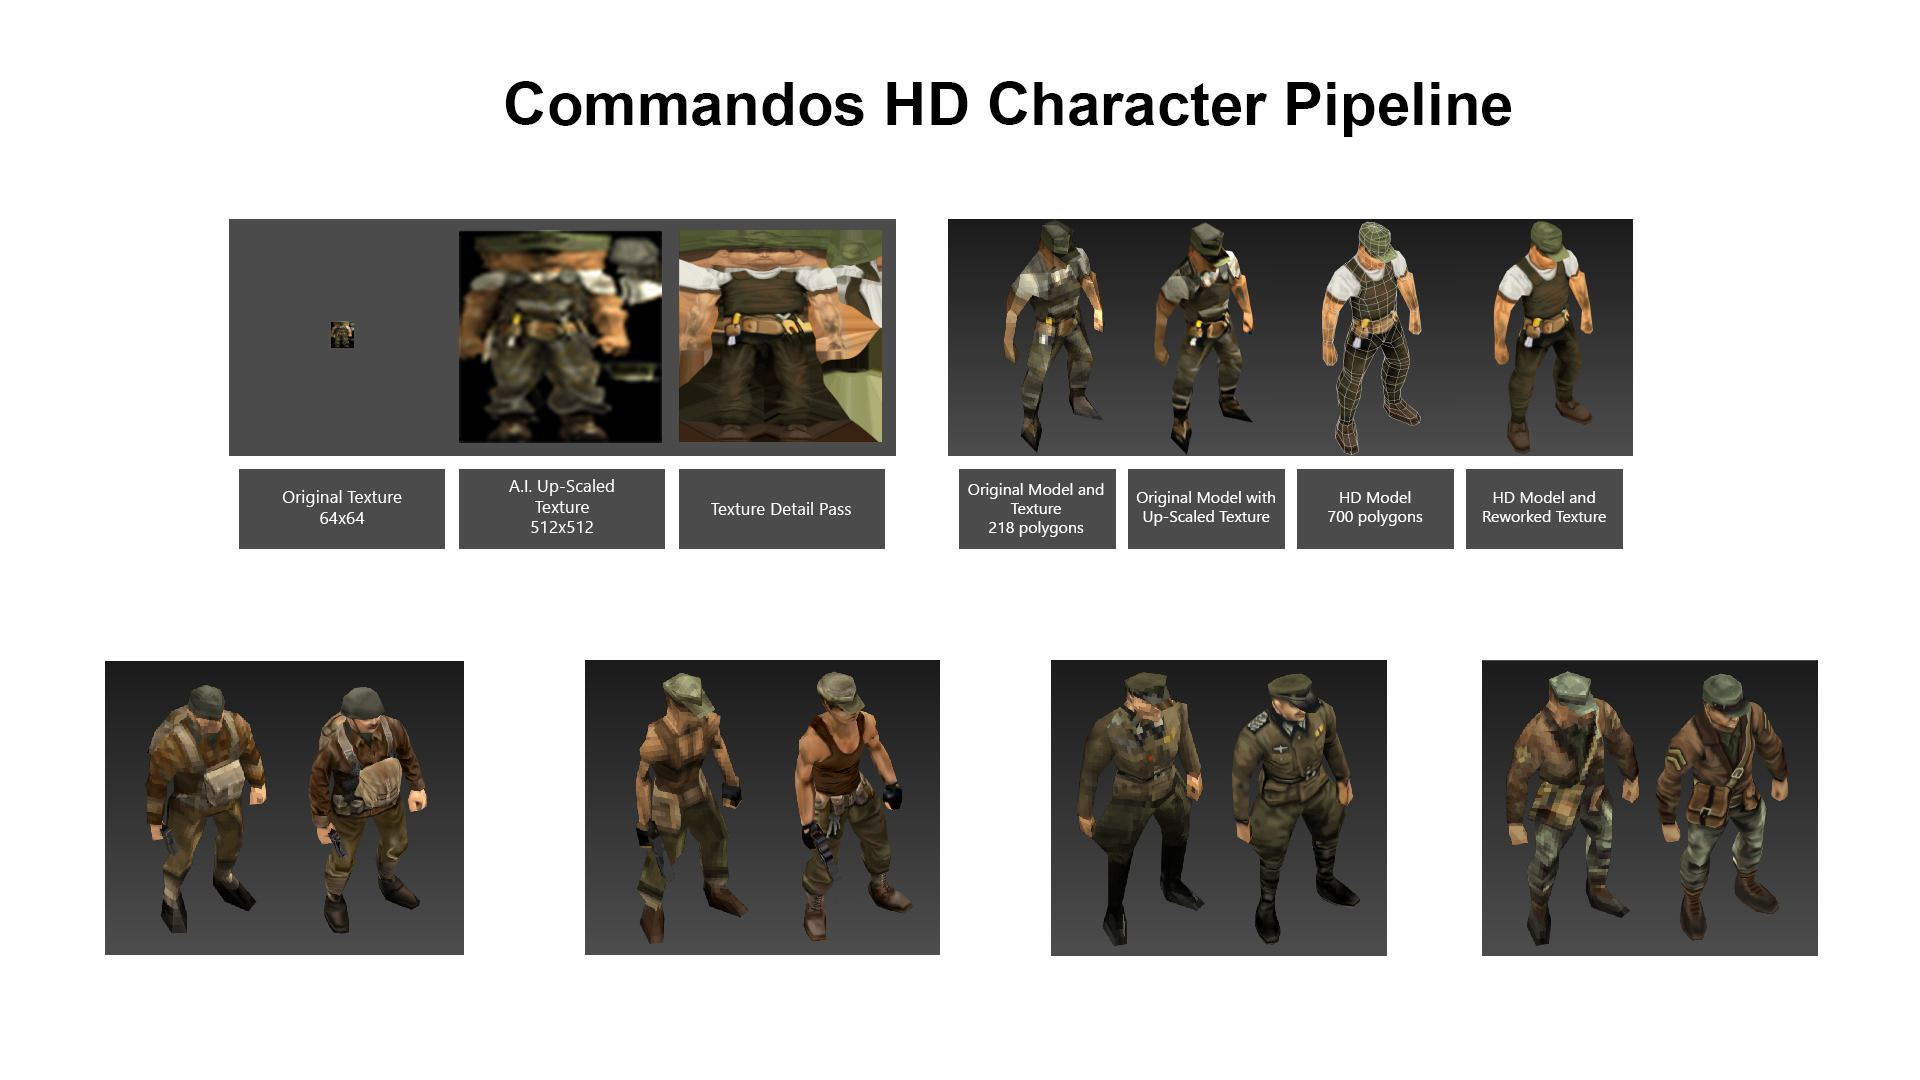 Commandos 2 HD Remastered Char-pipeline